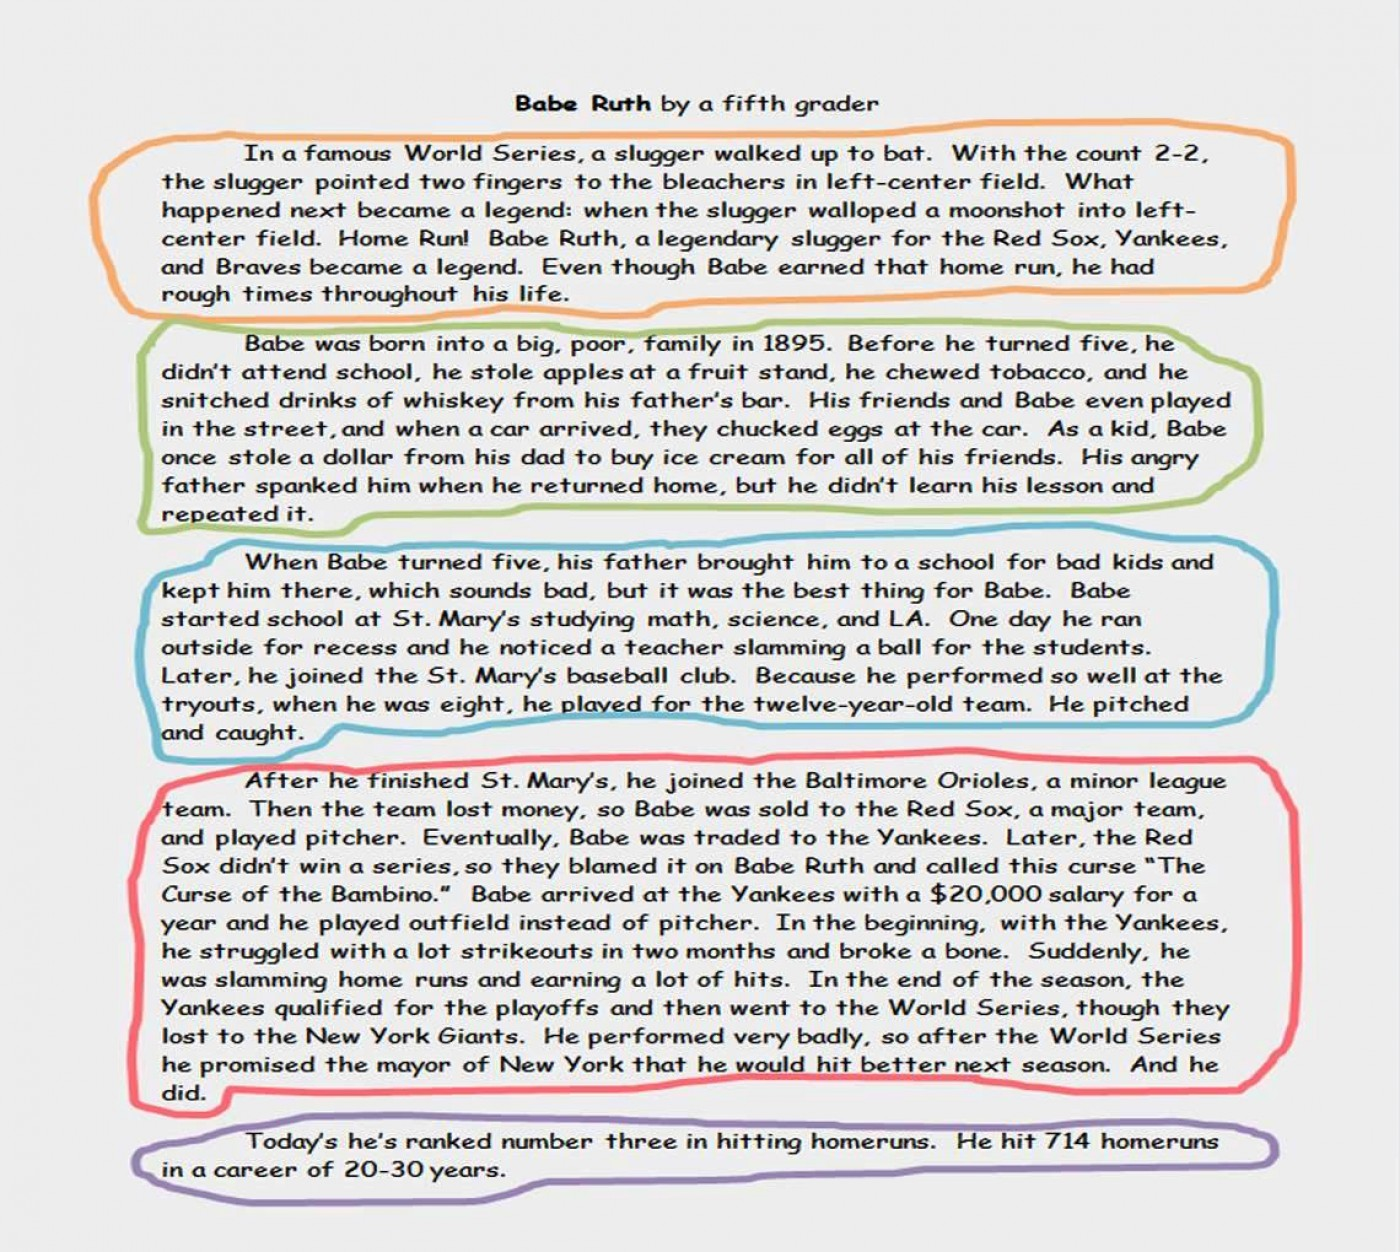 019 Essay Example Of Narrative Timeline Babe Ruth Imposing A Introduction Format About Love 1400